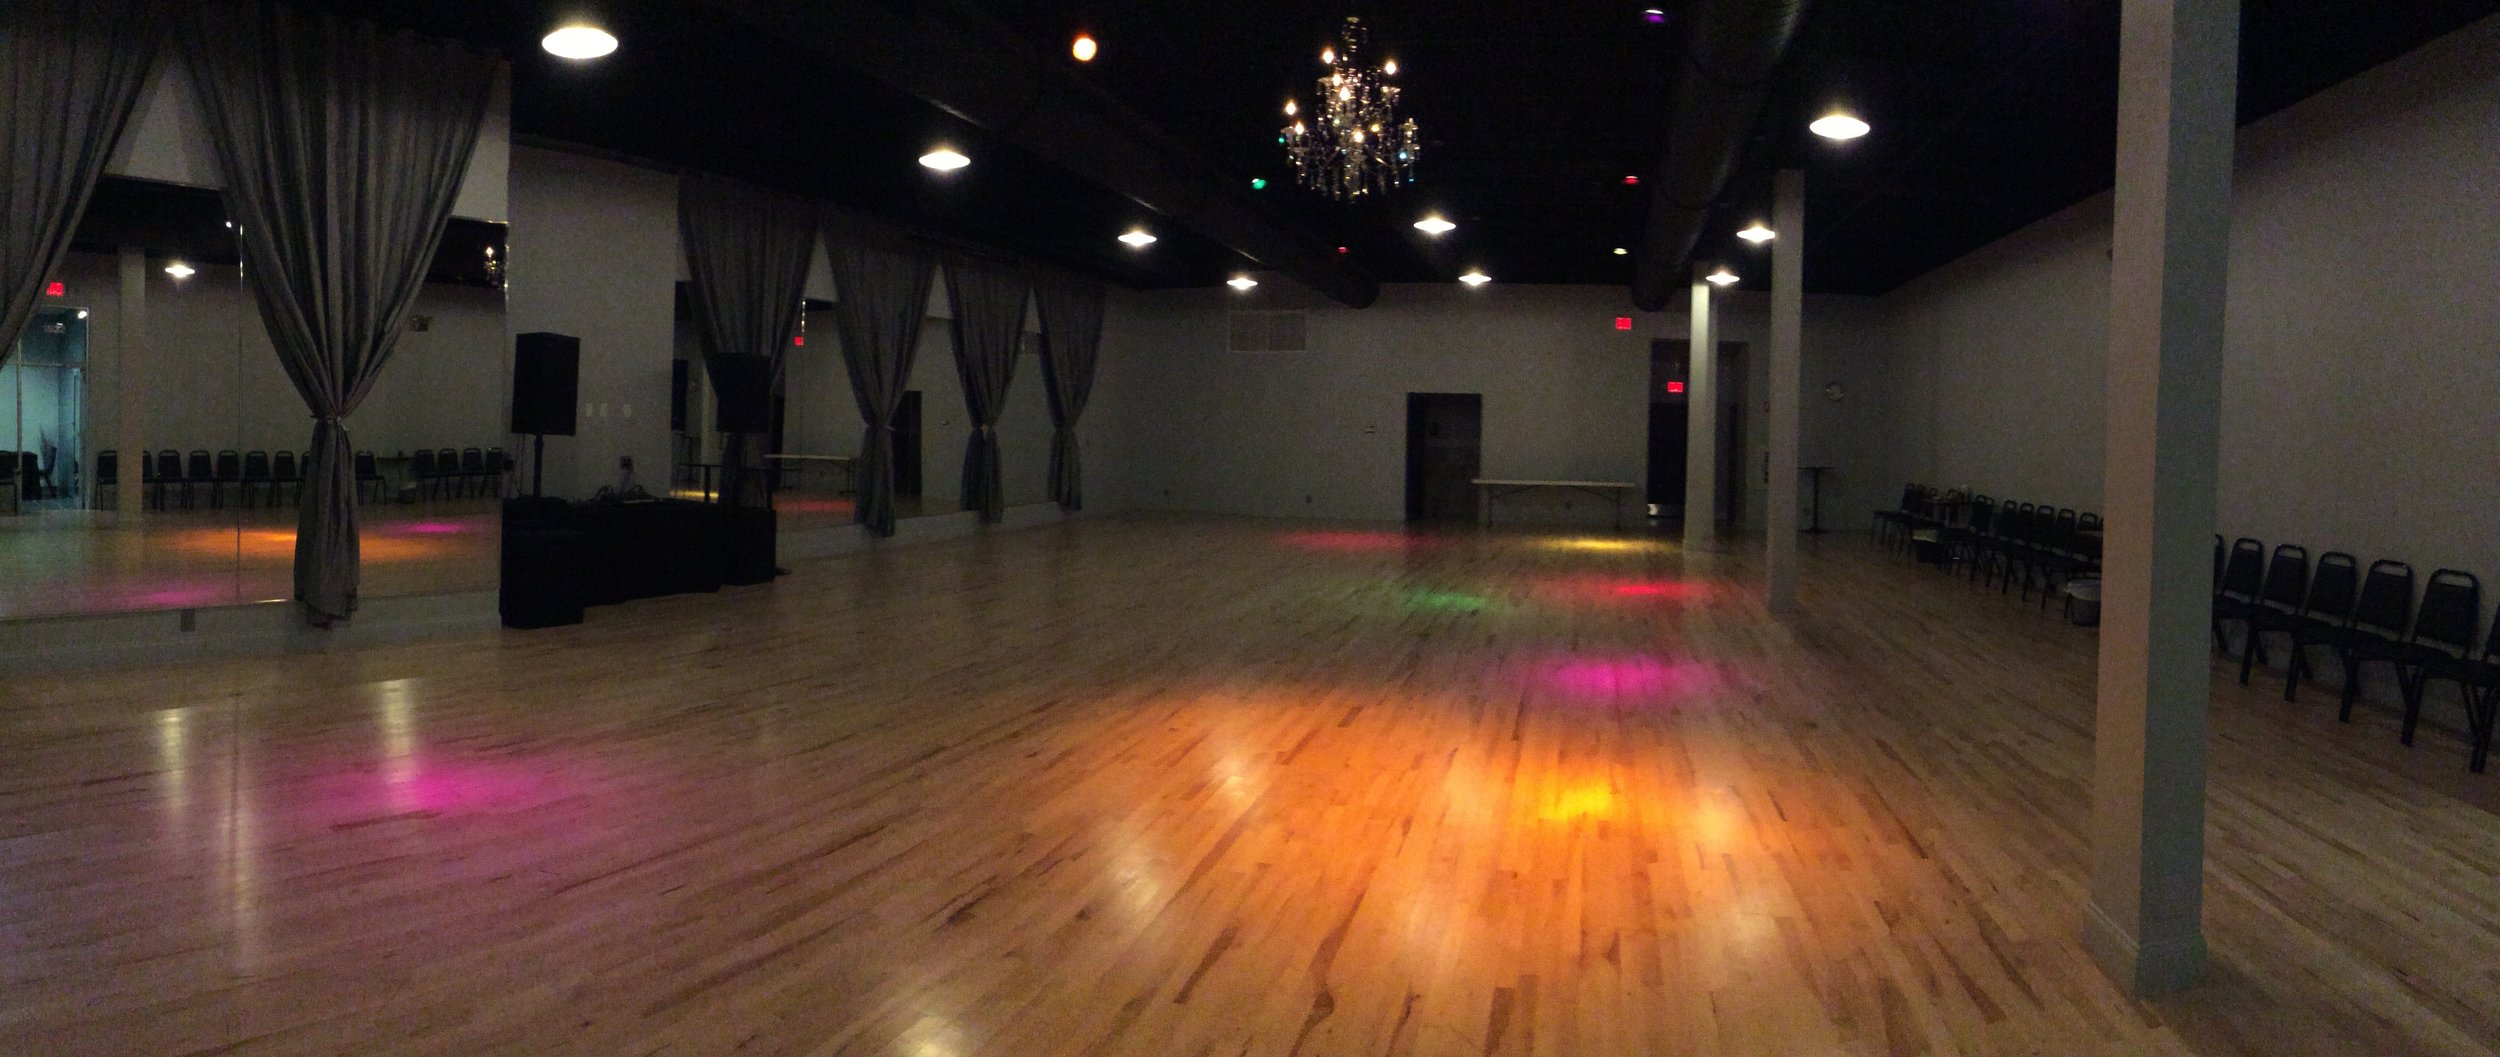 Midpointe Event Center - The Sterling Hall